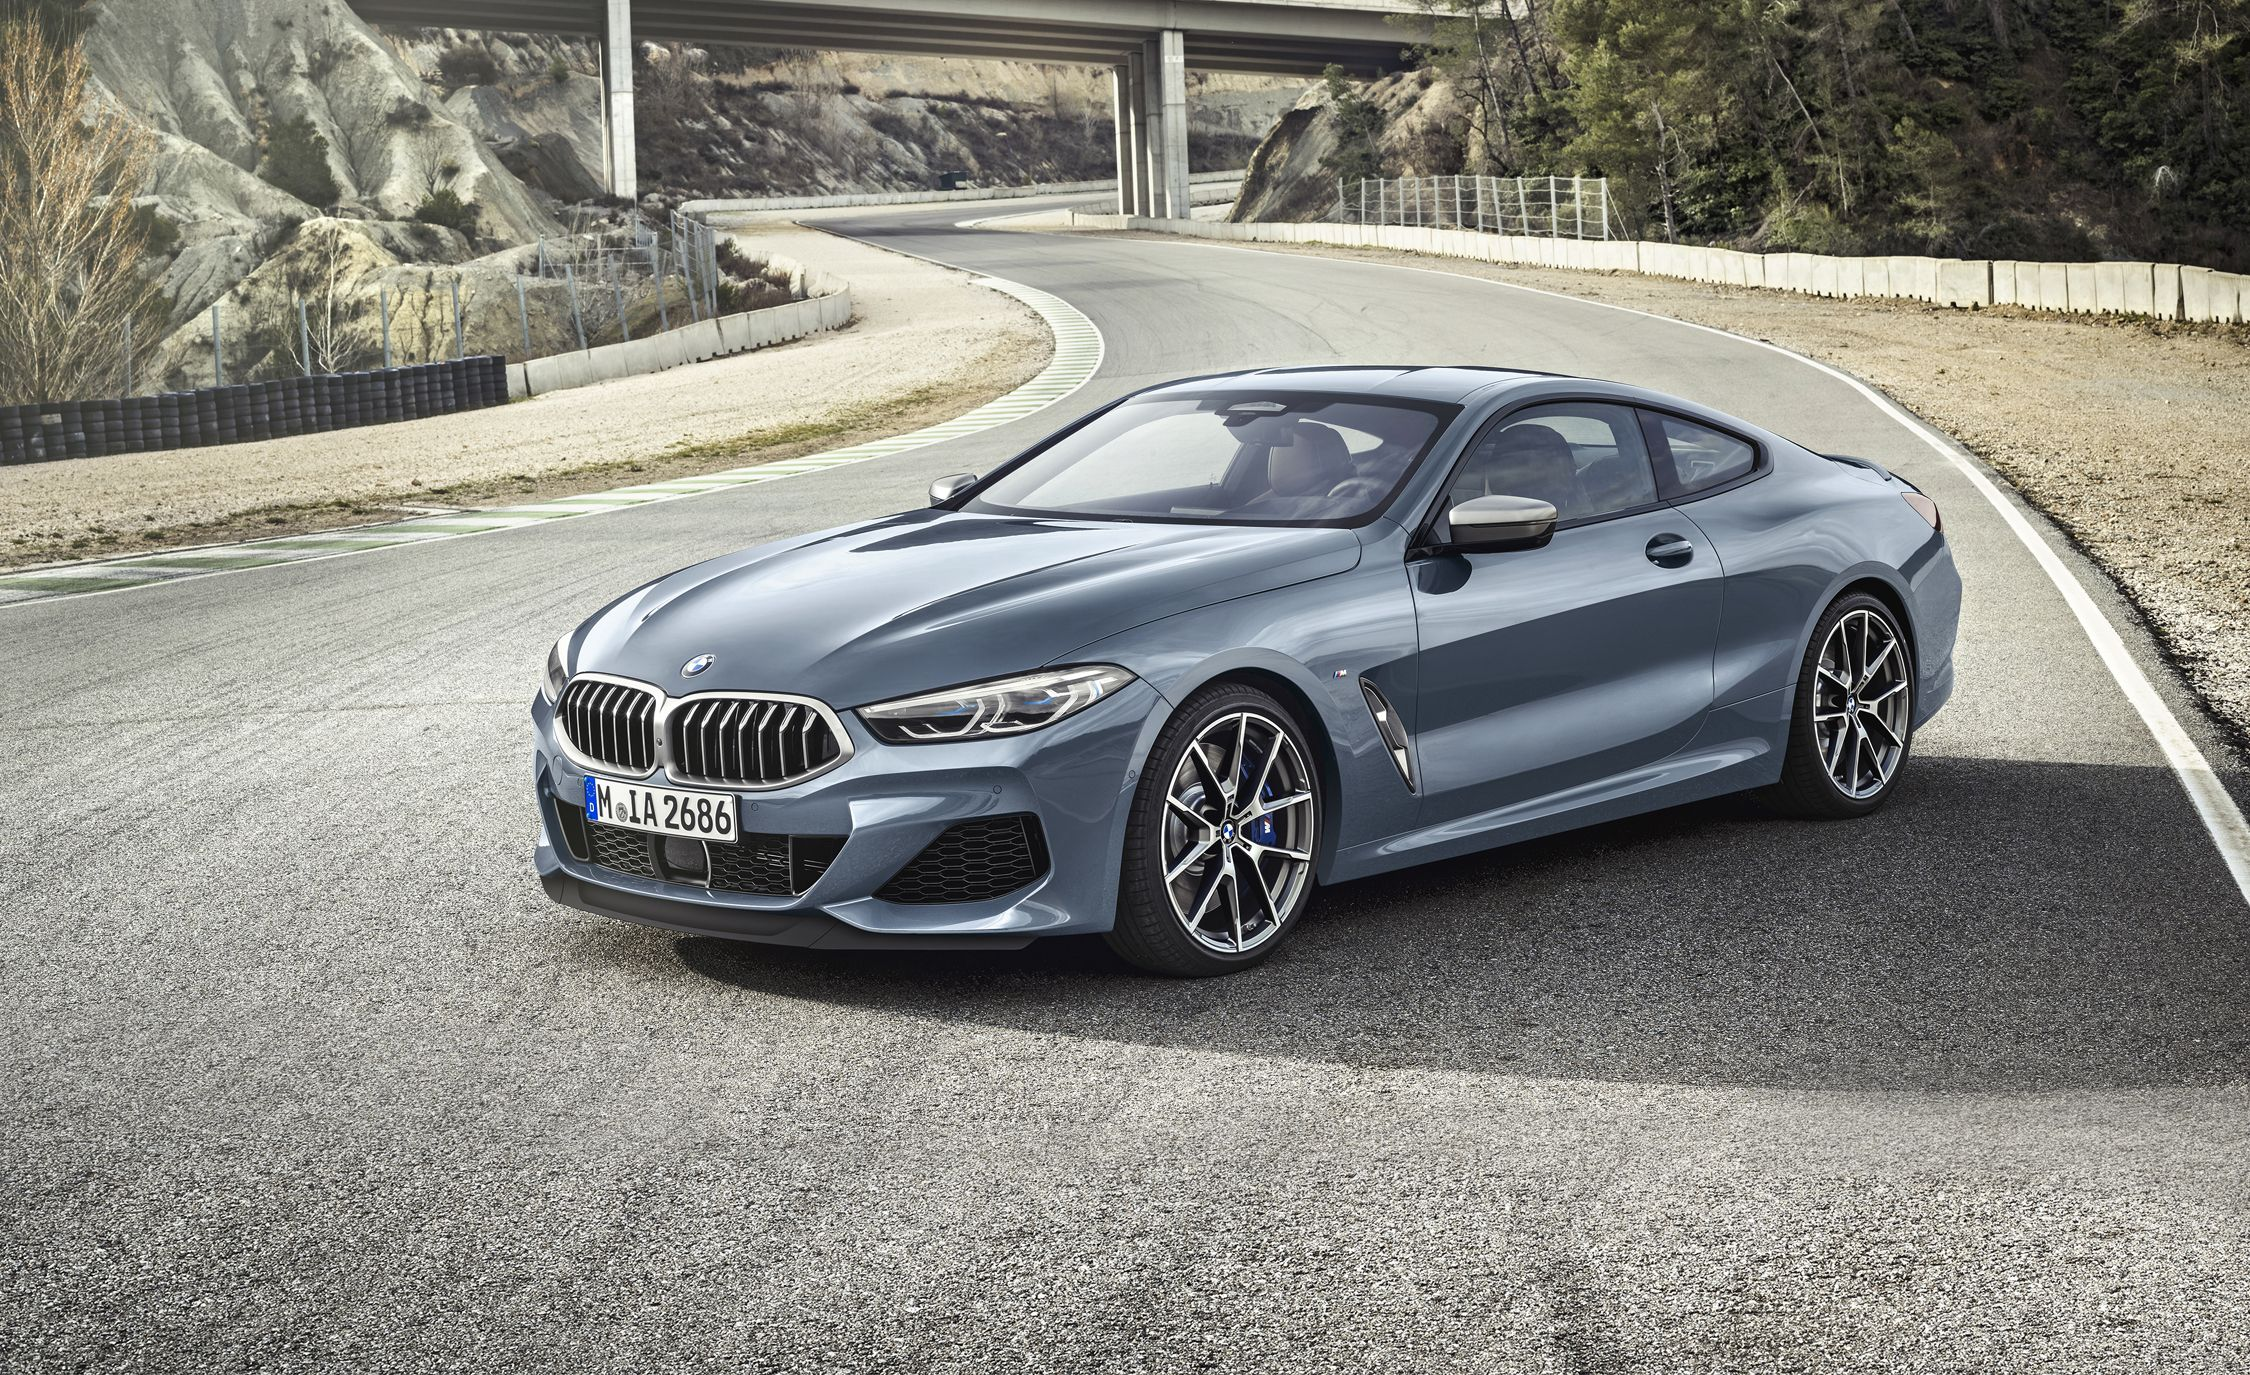 2019 BMW 8-series: History Doesn't Repeat, but It Rhymes